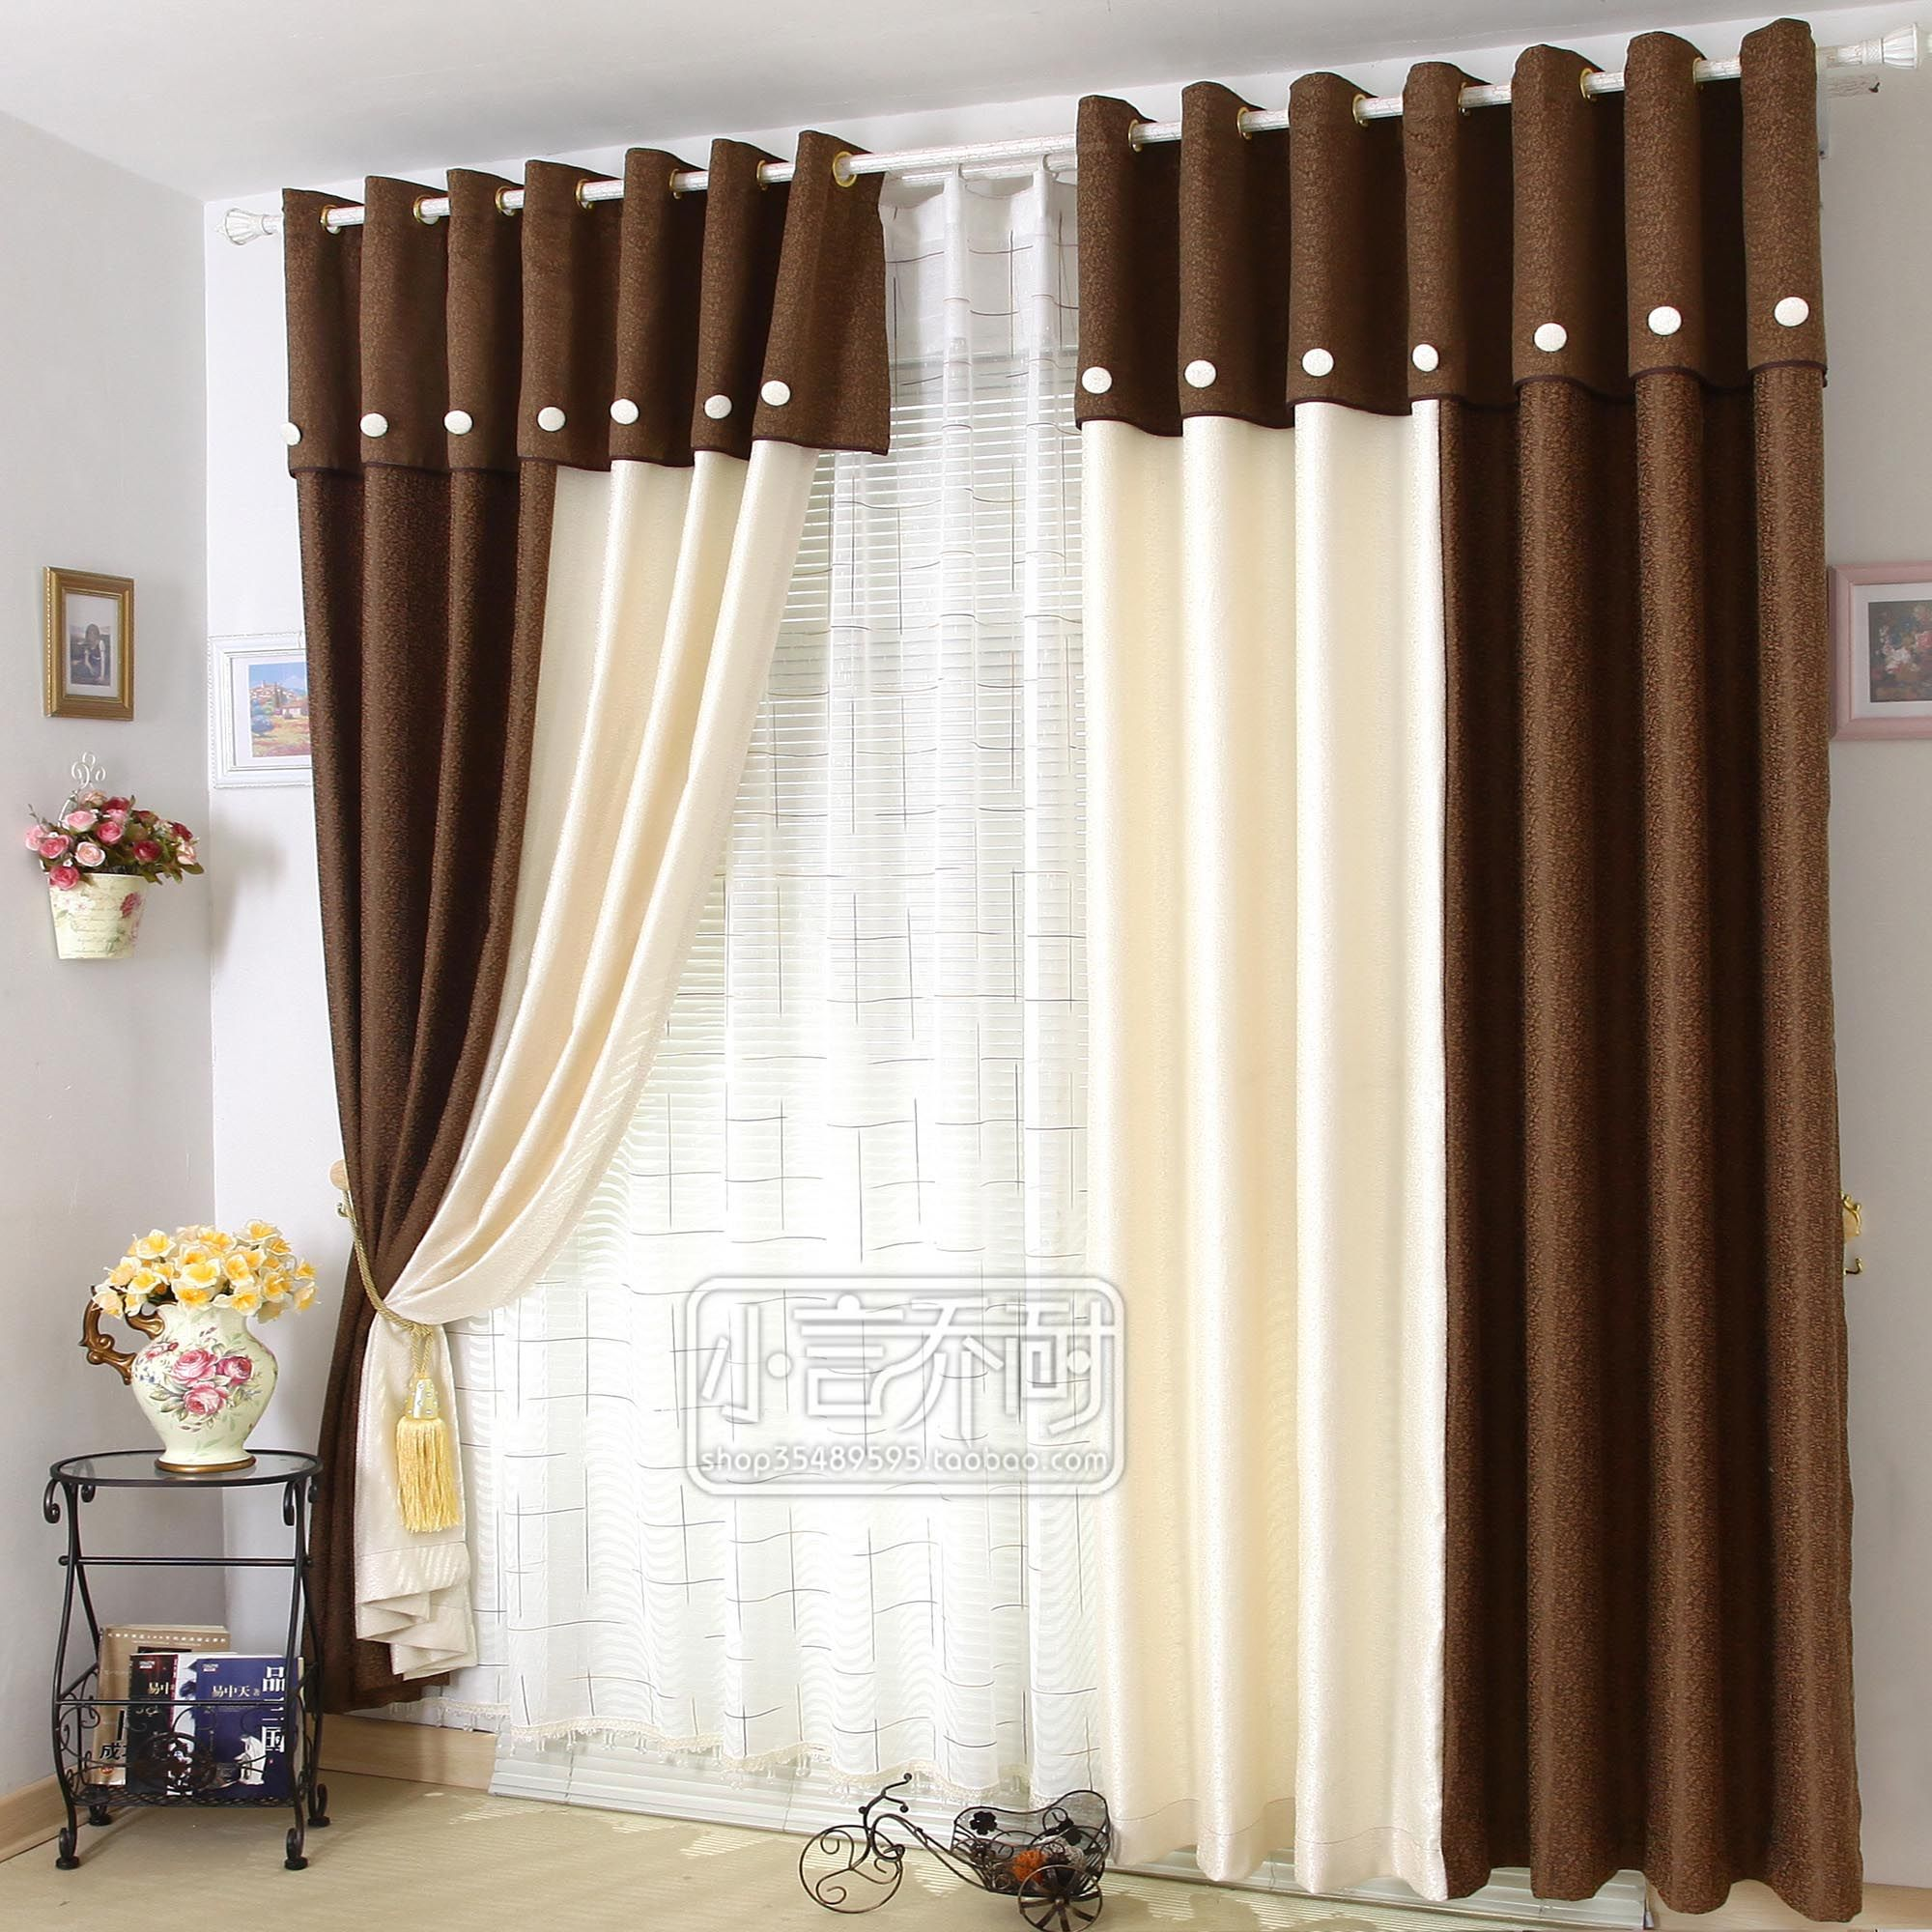 Beautiful Beautiful Curtains Window Curtains Living Room Curtains Living Room